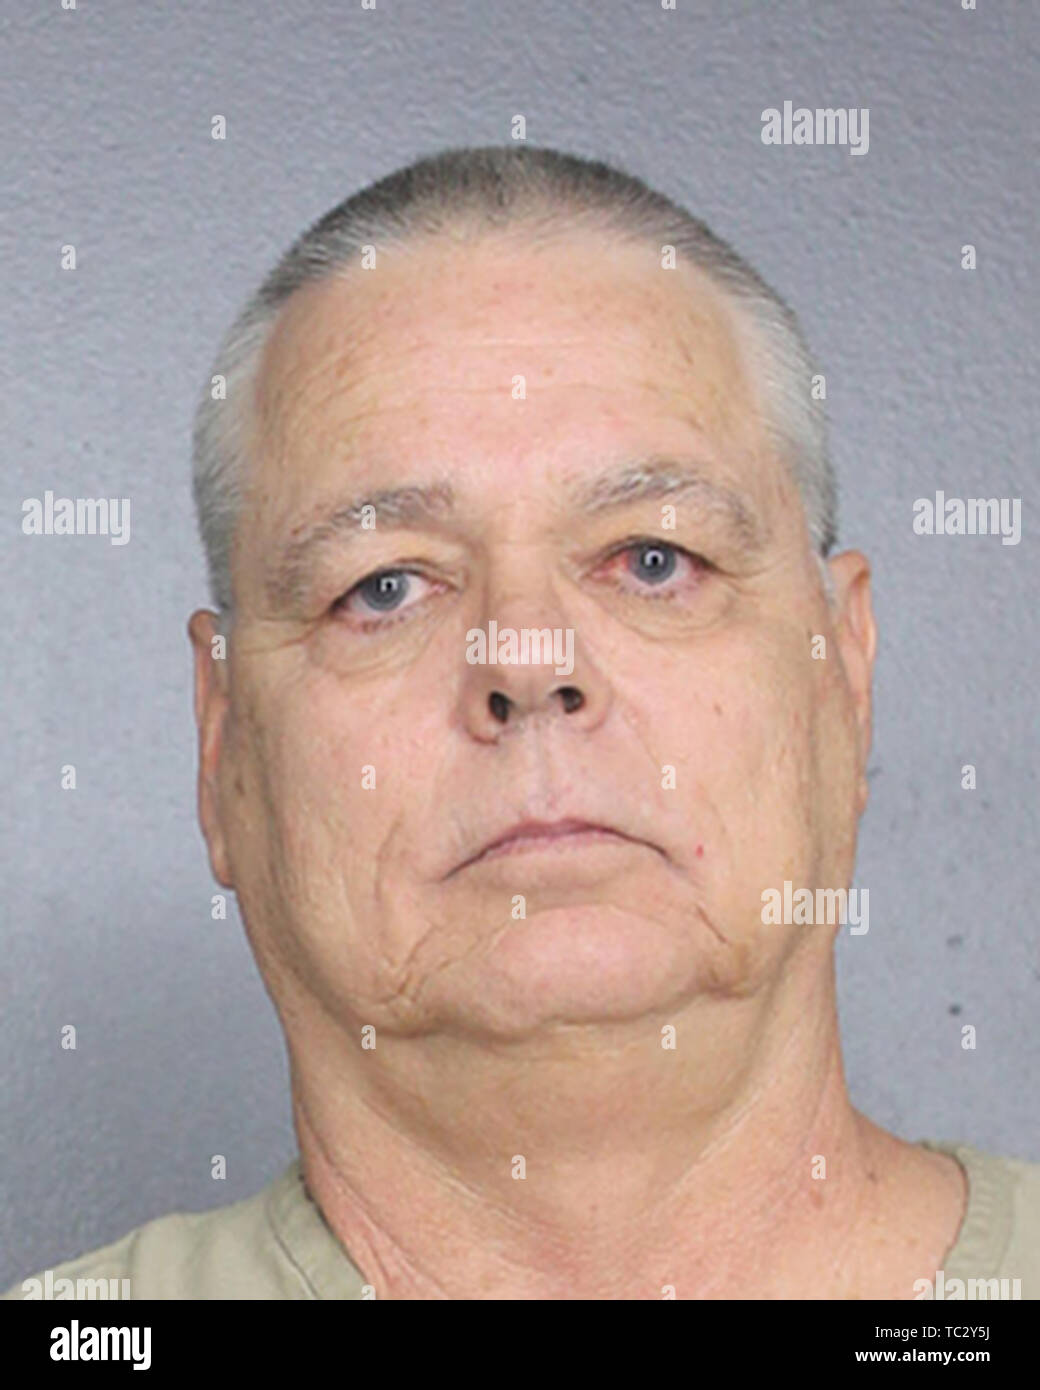 Fort Lauderdale ,Florida, USA. Police Mug shot hand out, People: Deputy Scot Peterson Credit: Storms Media Group/Alamy Live News - Stock Image